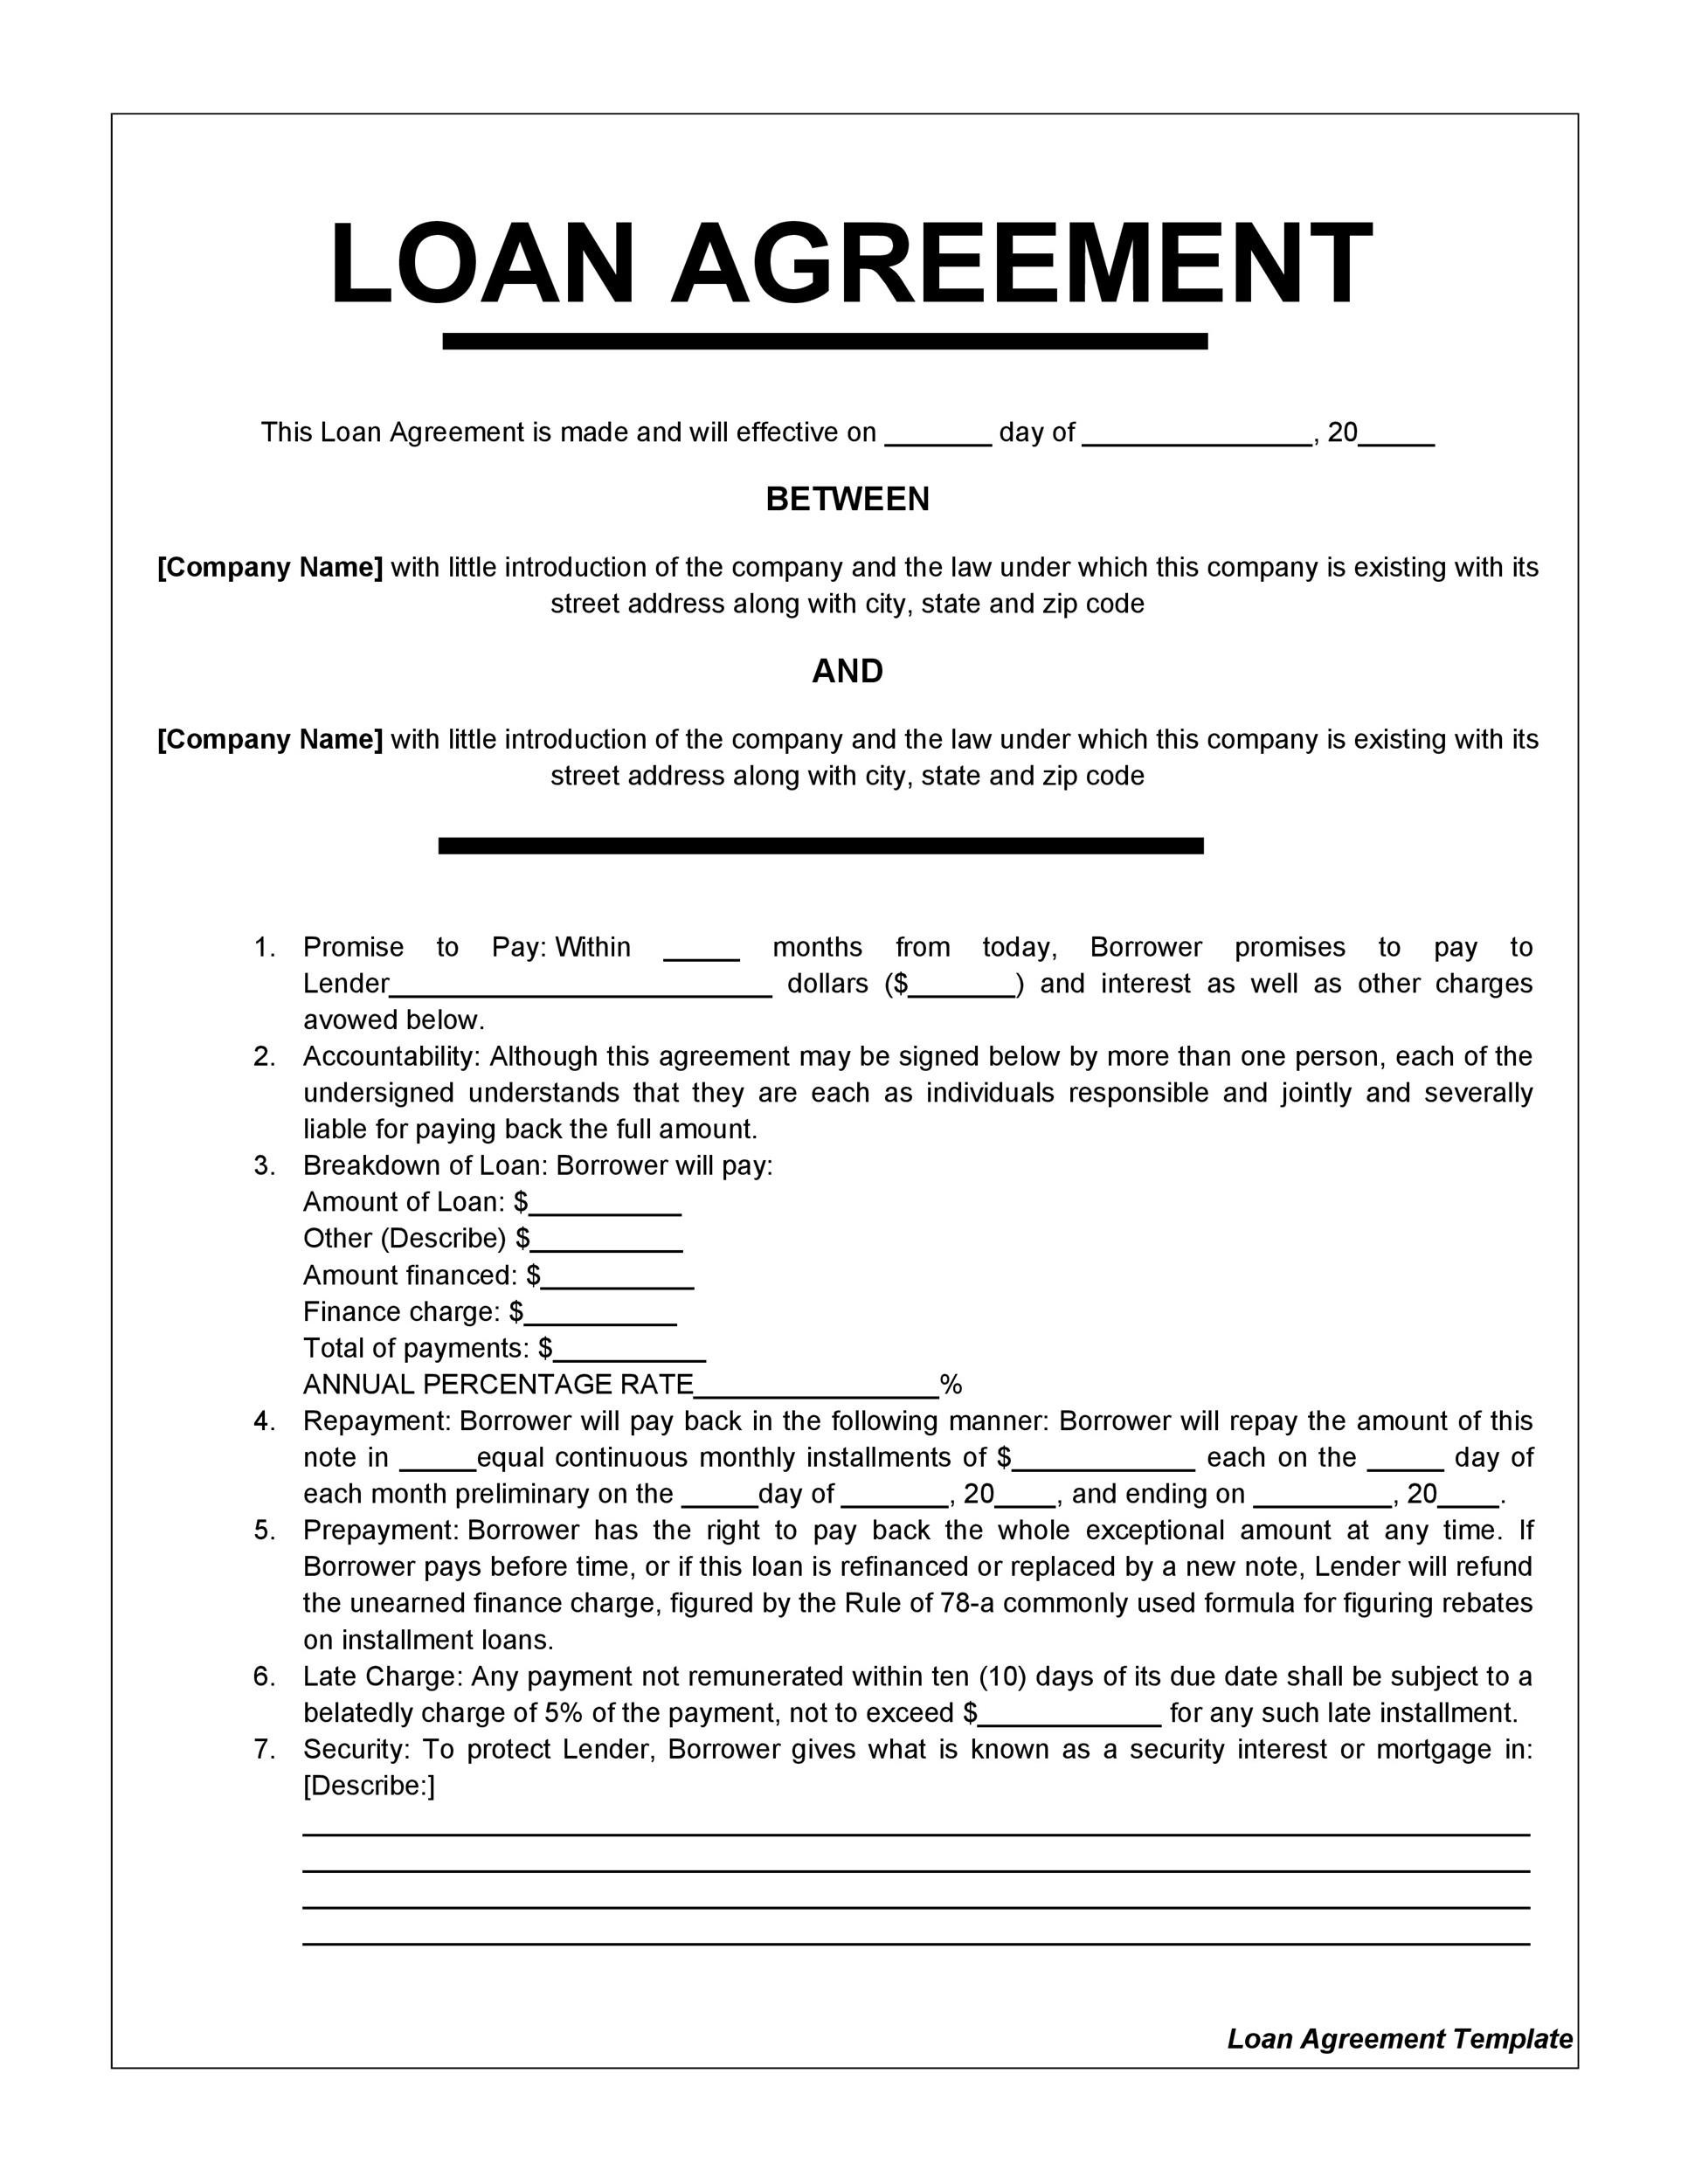 Short Term Loan Agreement Template Loan Agreement Template Online